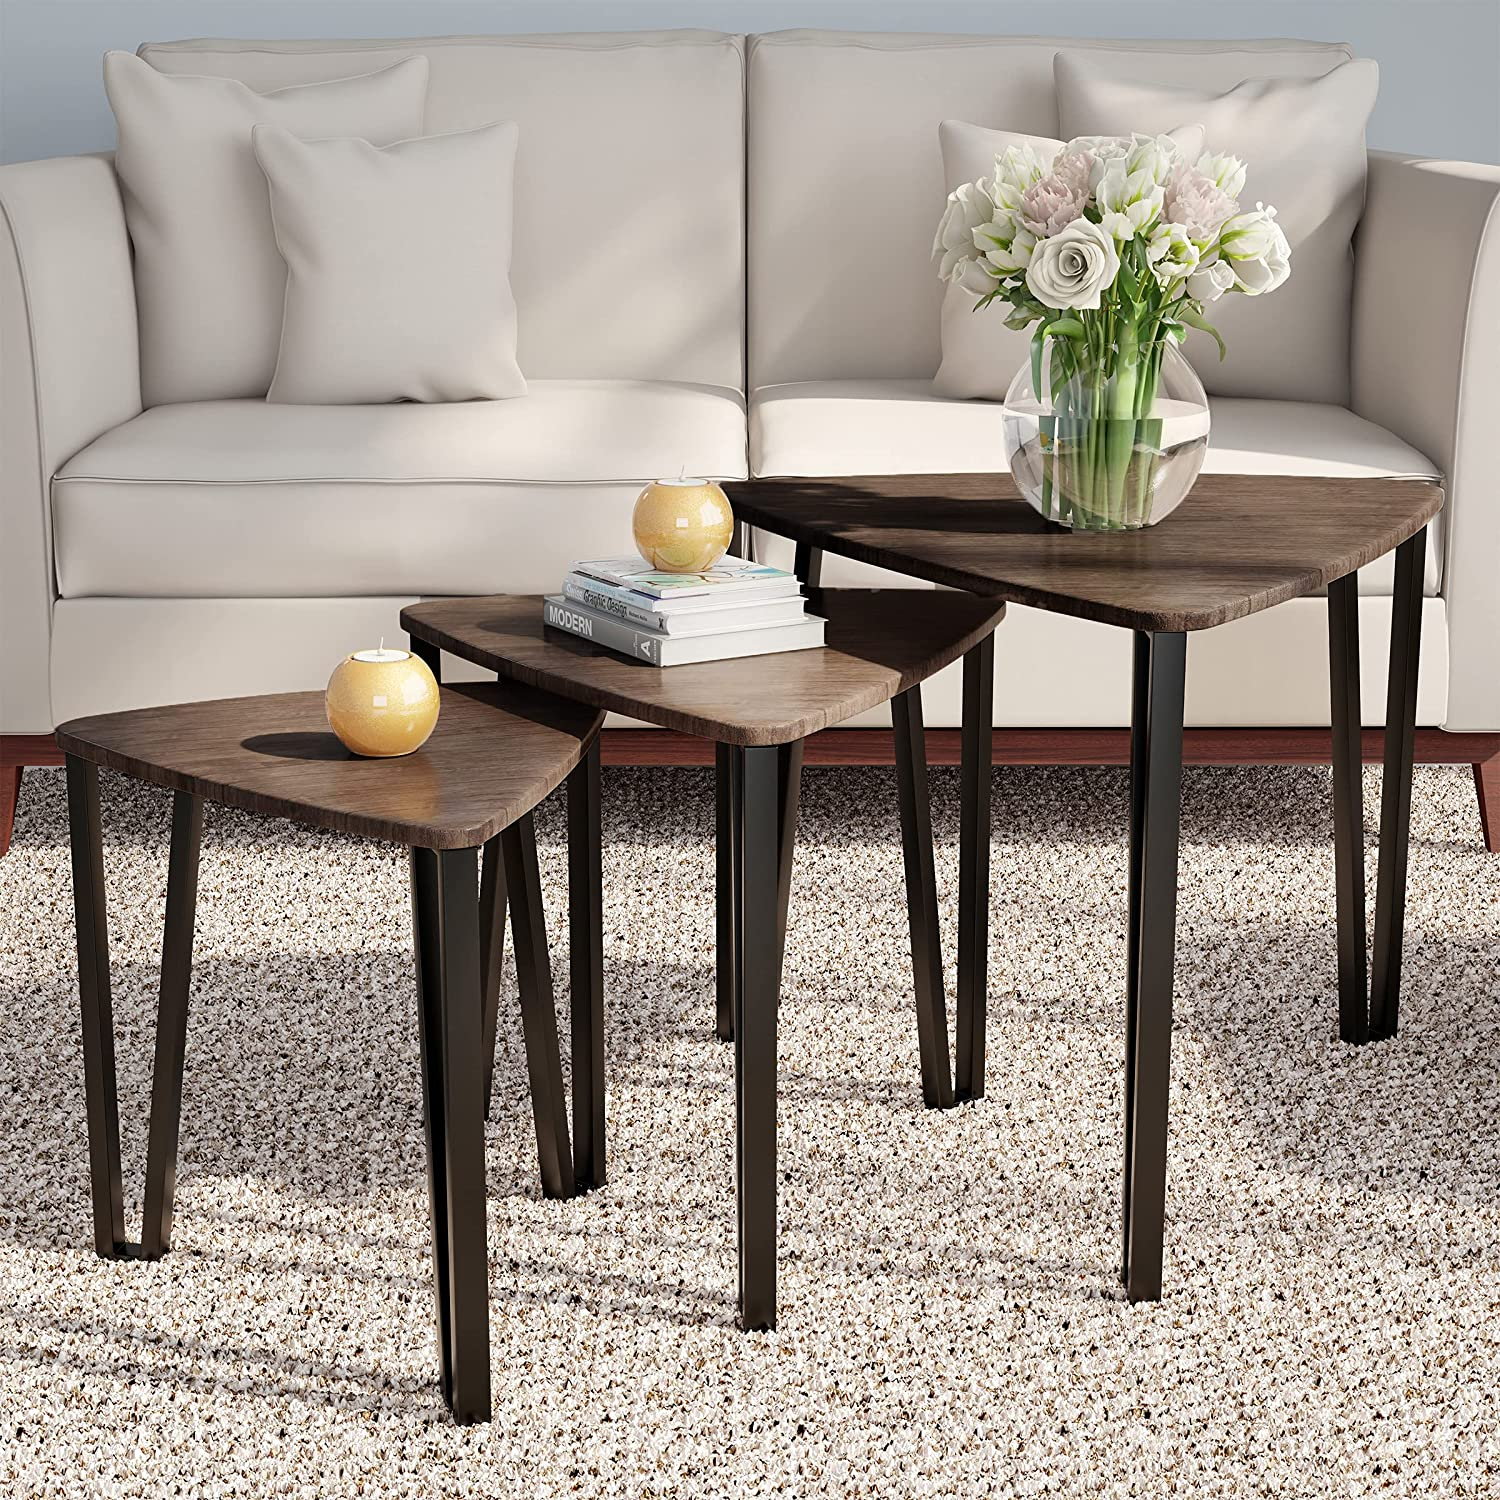 LAVISH HOME Nesting Set of 3, Modern Woodgrain Look for Living Room Coffee Tables or Nightstands-Contemporary Accent Decor Furniture